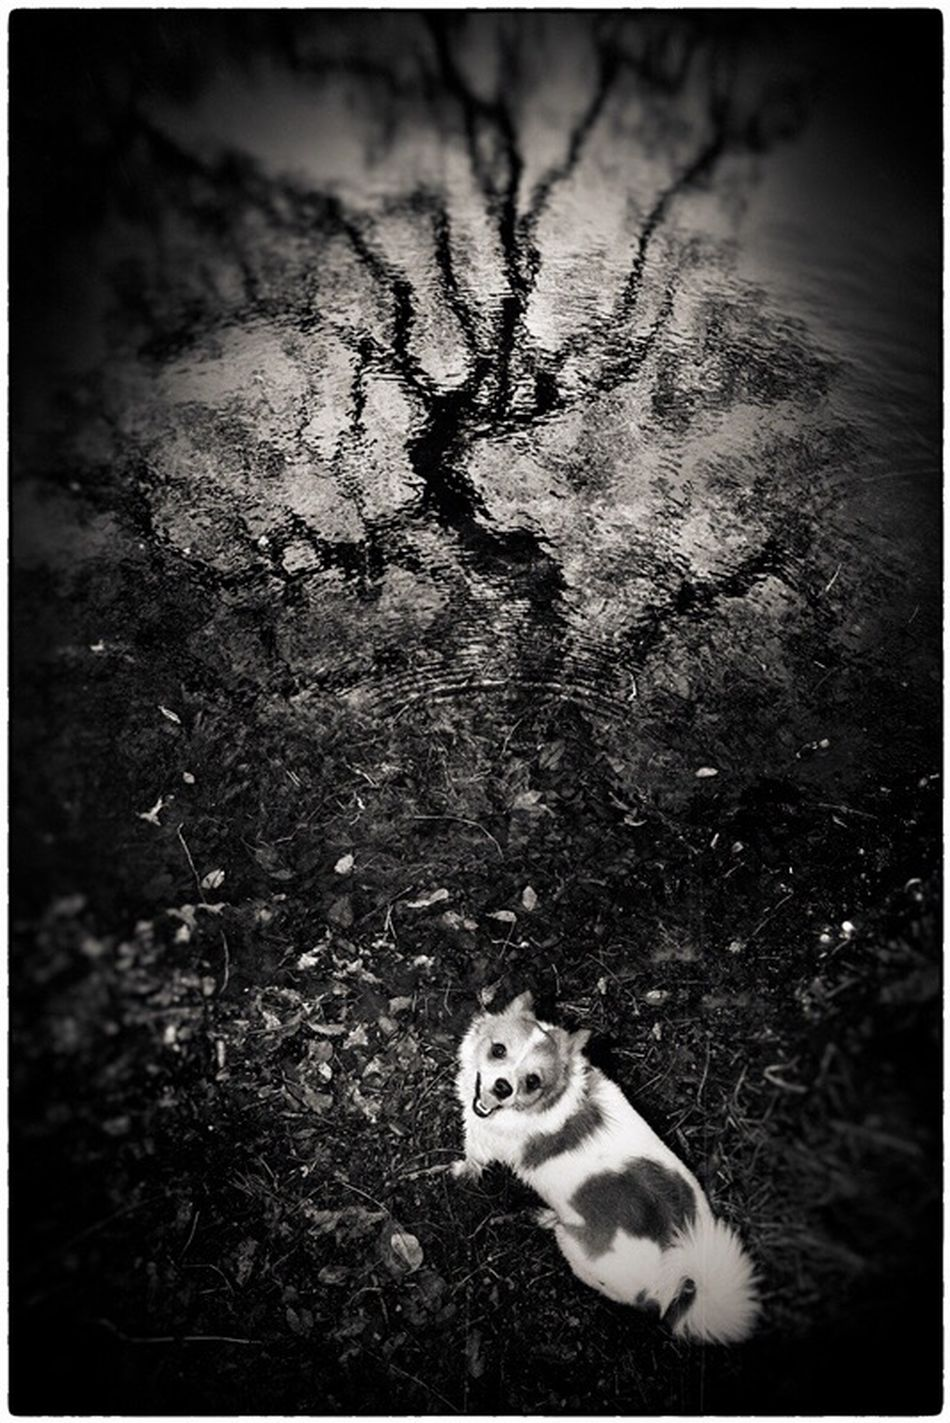 One Animal No People Pets Outdoors Nature Wave Pattern Reflection Invitation Blackandwhite Water Reflections Composition Dogtime Say Hello